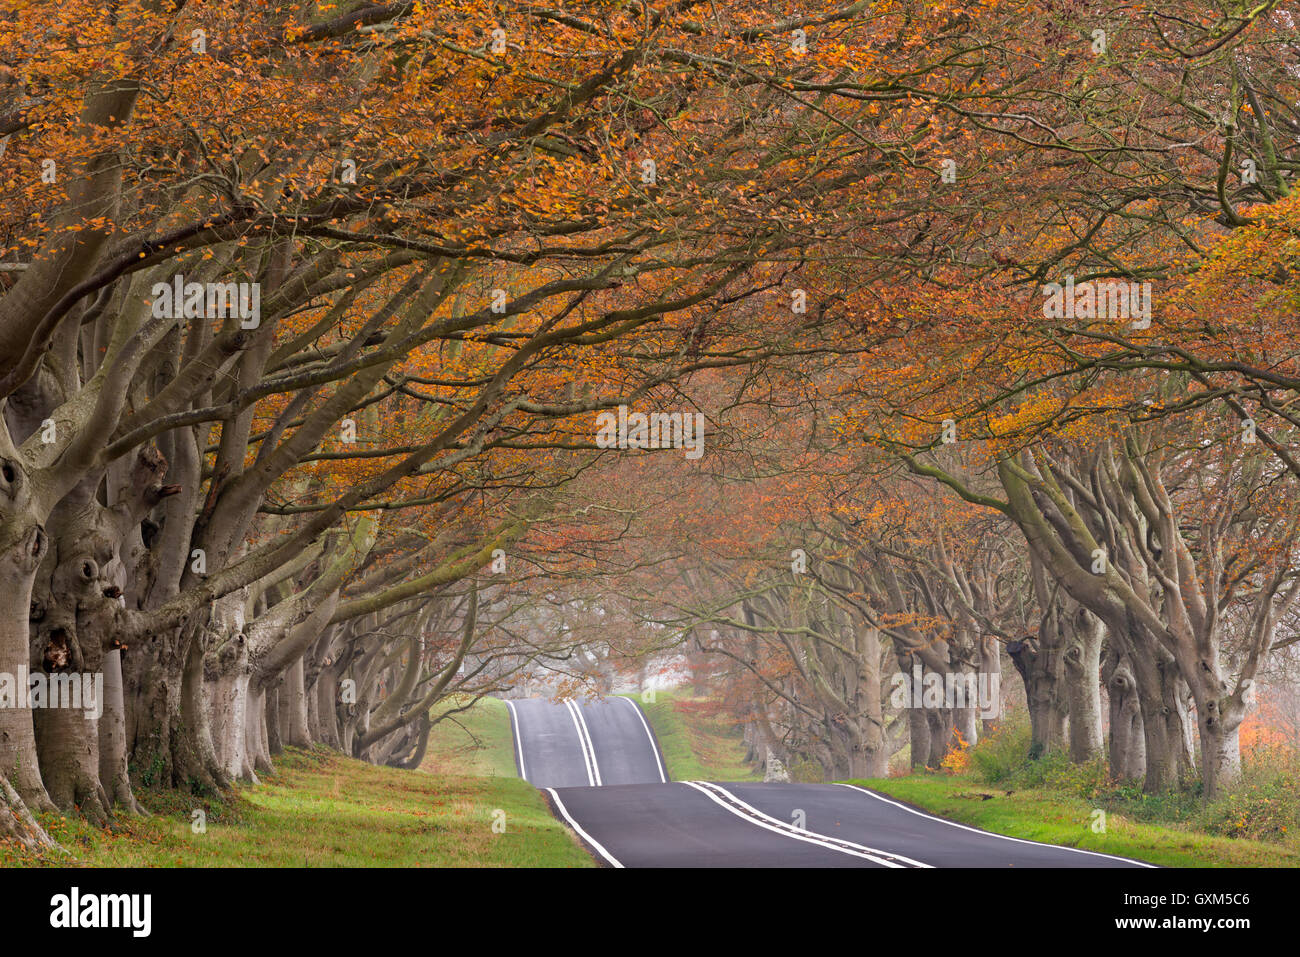 Country road passing through a tunnel of colourful autumnal beech trees, Dorset, England. Autumn (November) 2014. - Stock Image